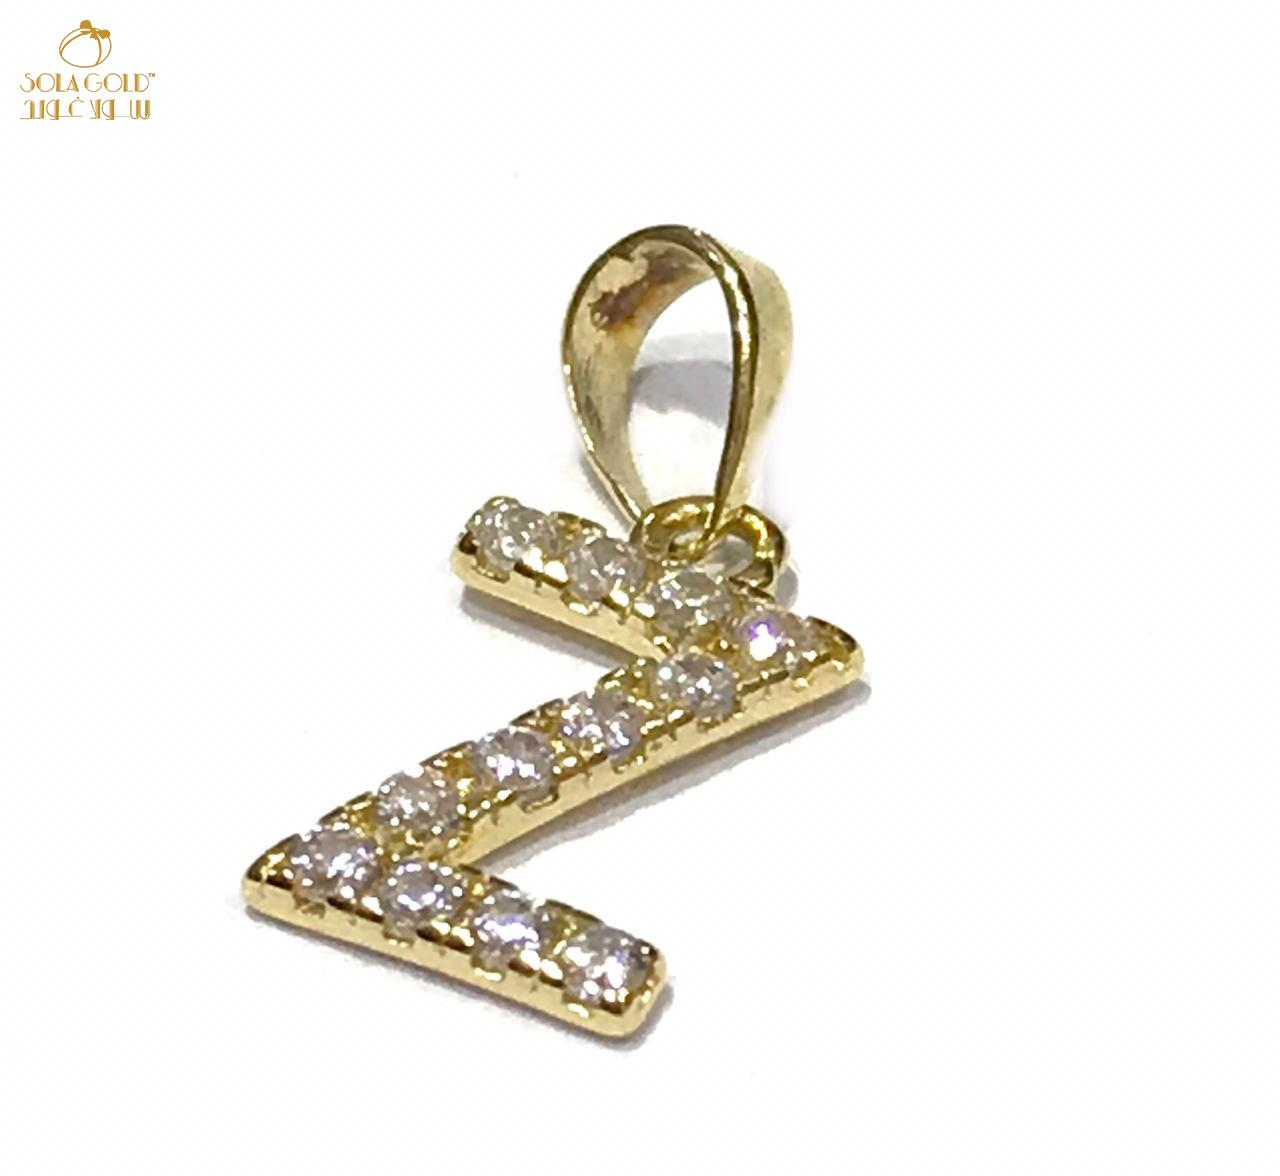 REAL GOLD MINI LETTER Z PENDANT 18K